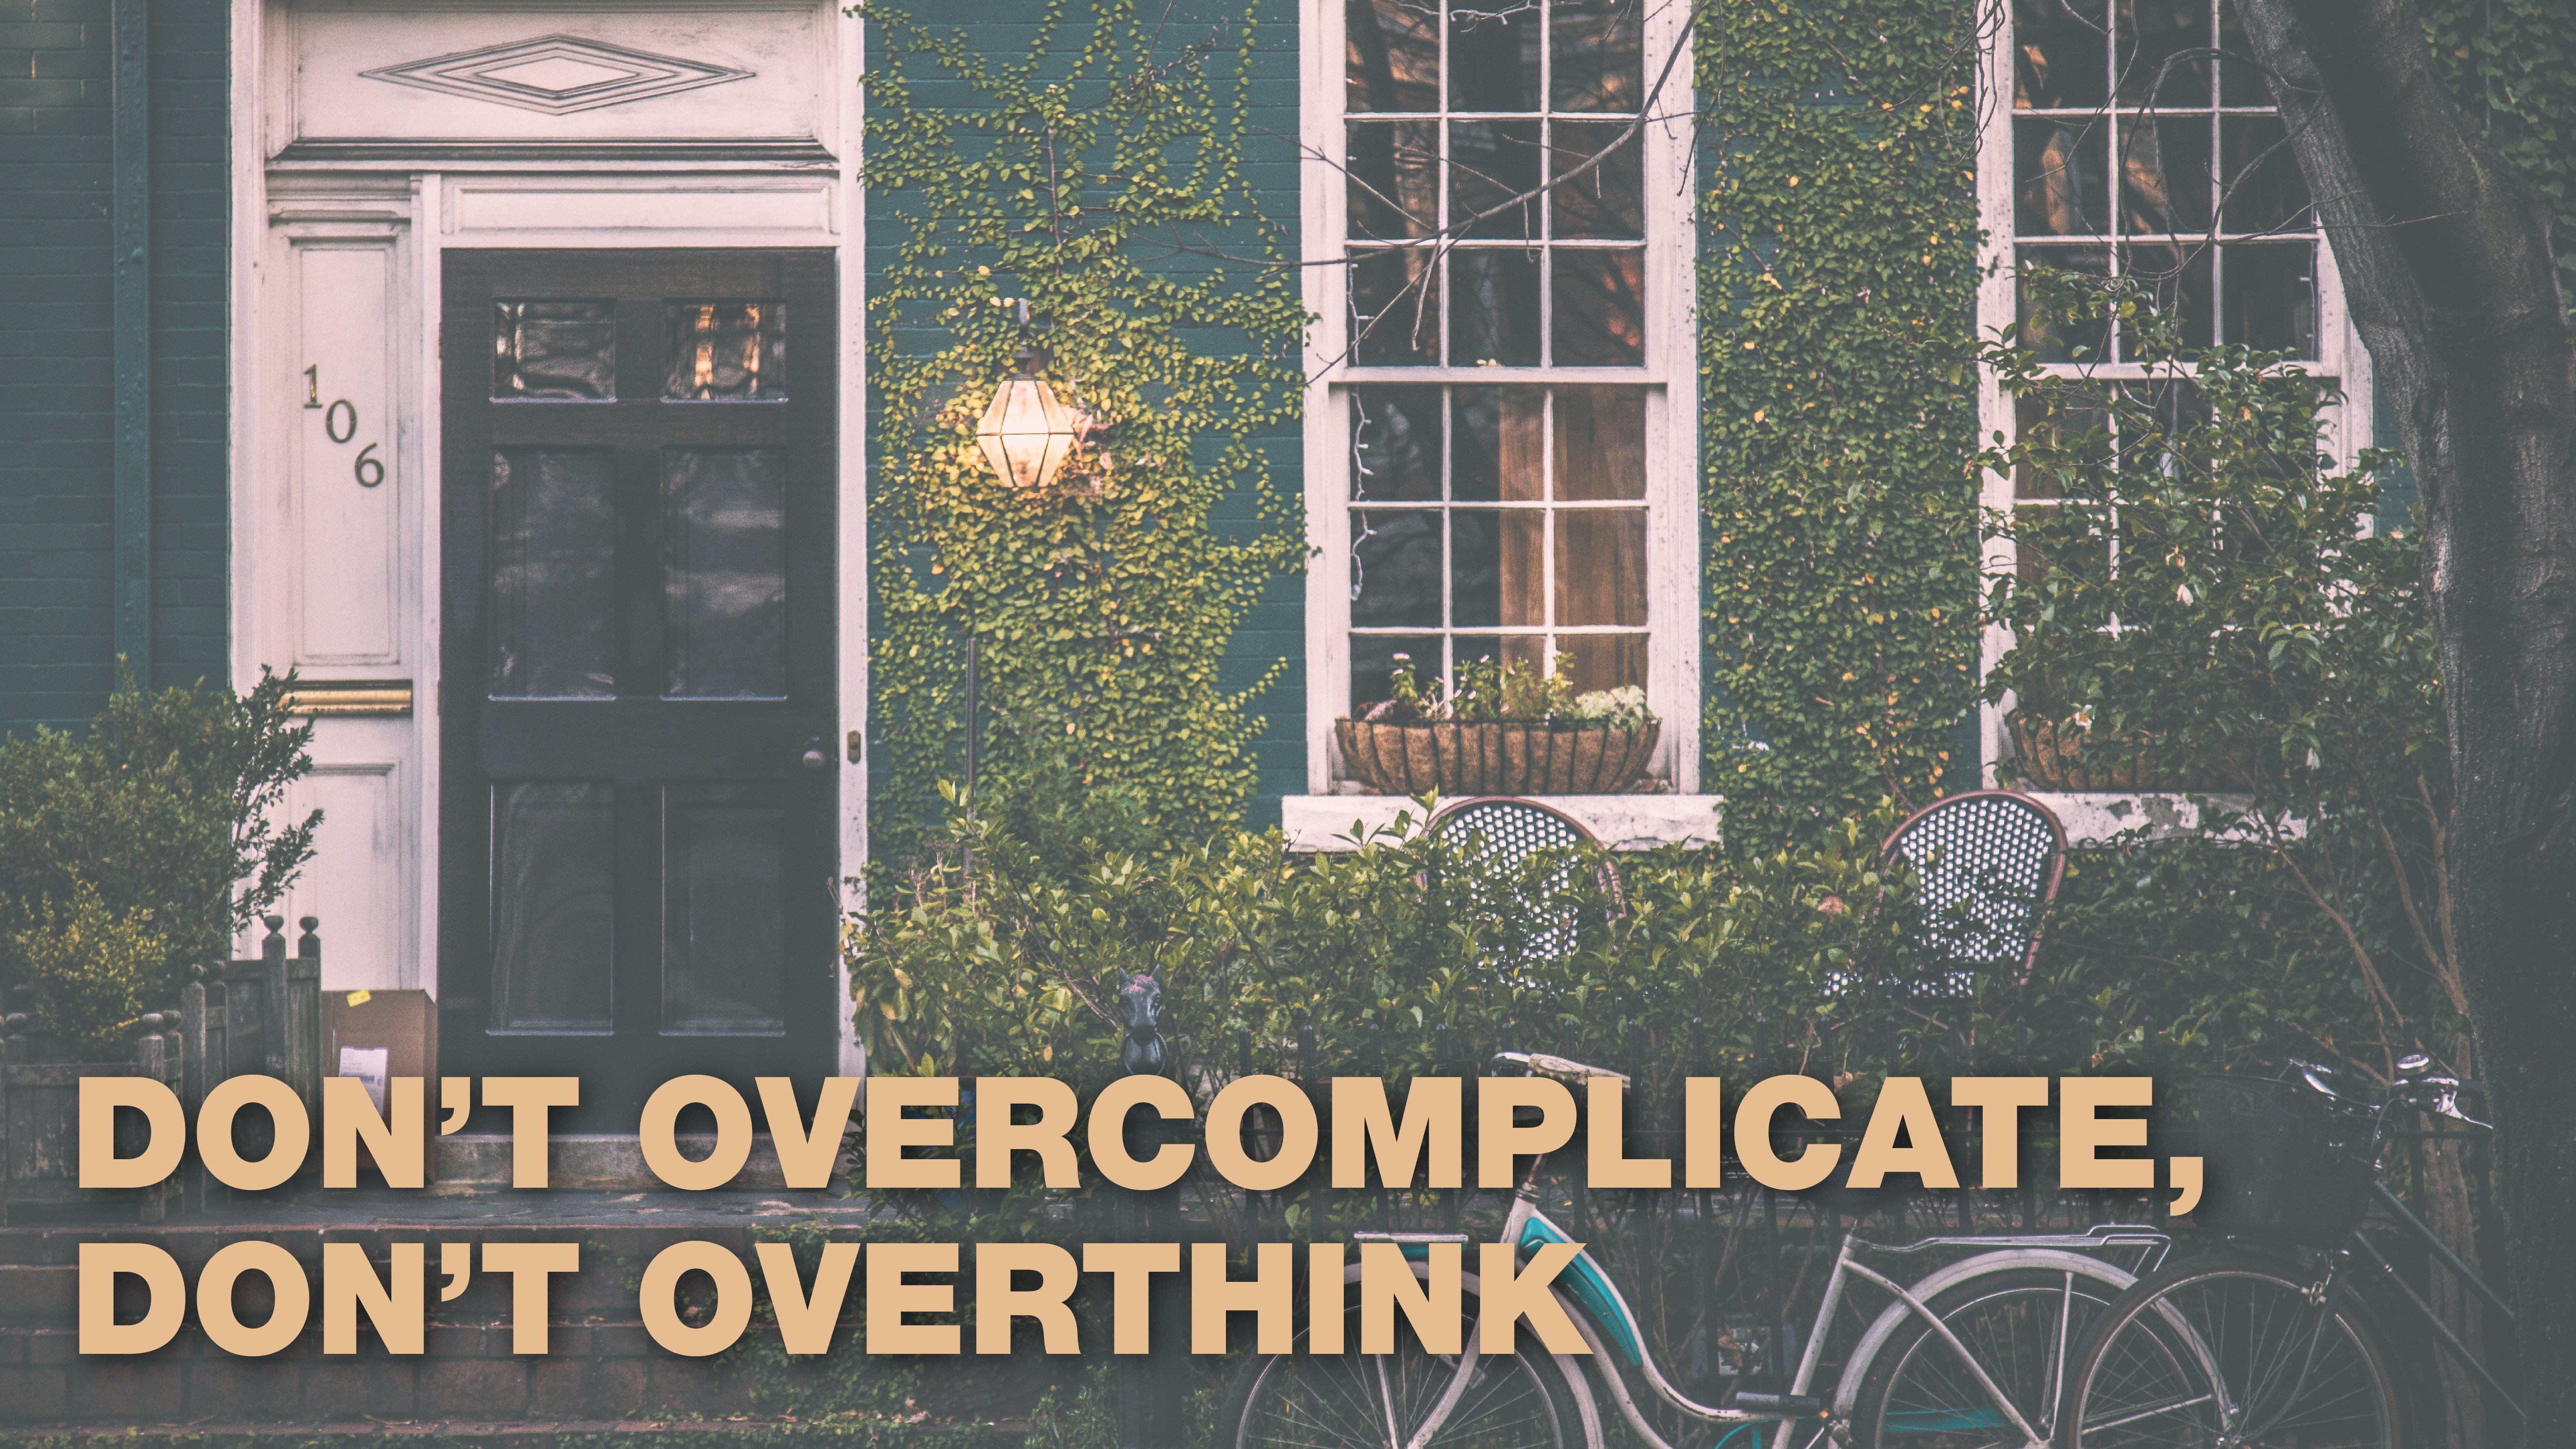 DON'T over-complicate, DON'T overthink